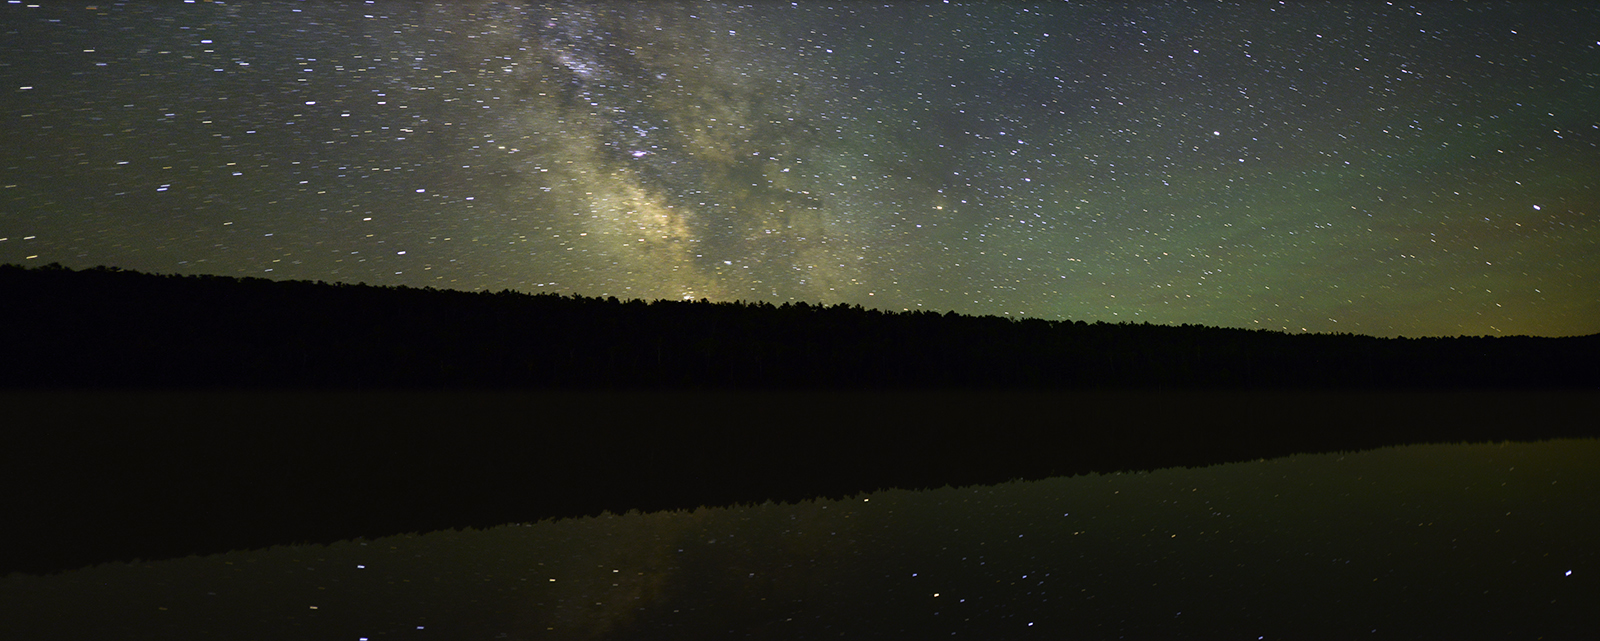 Fannt_hooe_lake_and_the_milky_way_copy_cot22r